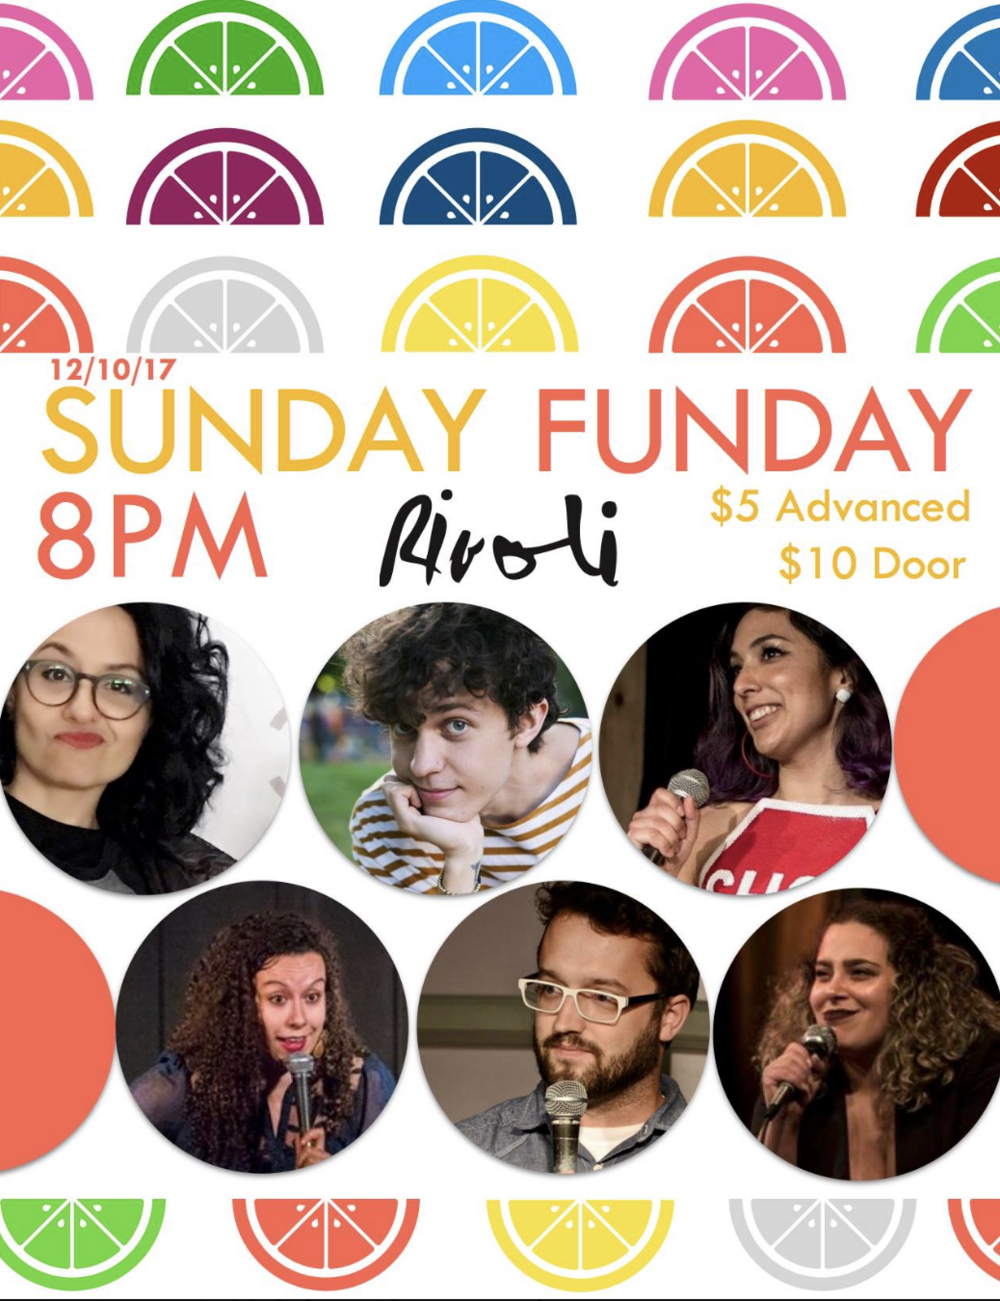 SUNDAY FUNDAY - COVER: $15 Adv / $20 DoorMORE INFO